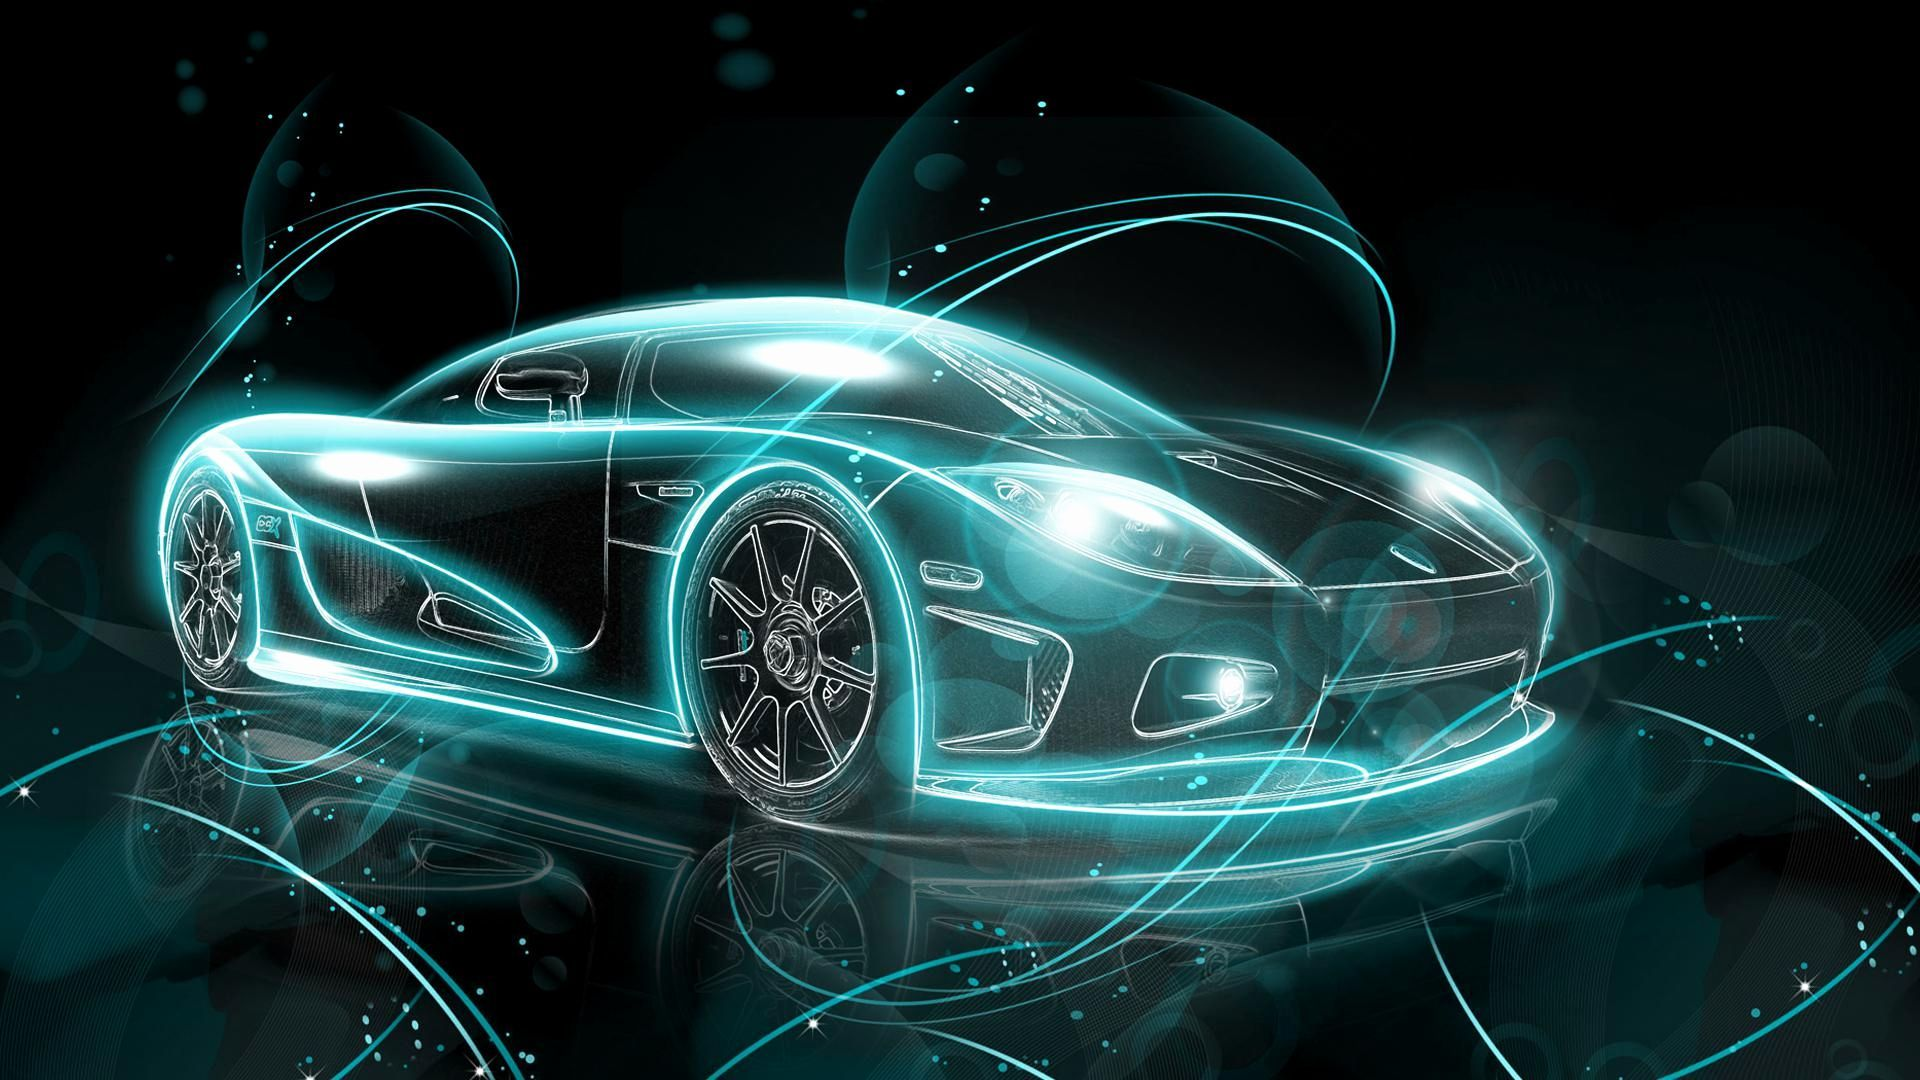 cool cars wallpapers free download hd wallpapers. Awesome Neon Cars Wallpapers Top Free Awesome Neon Cars Backgrounds Wallpaperaccess